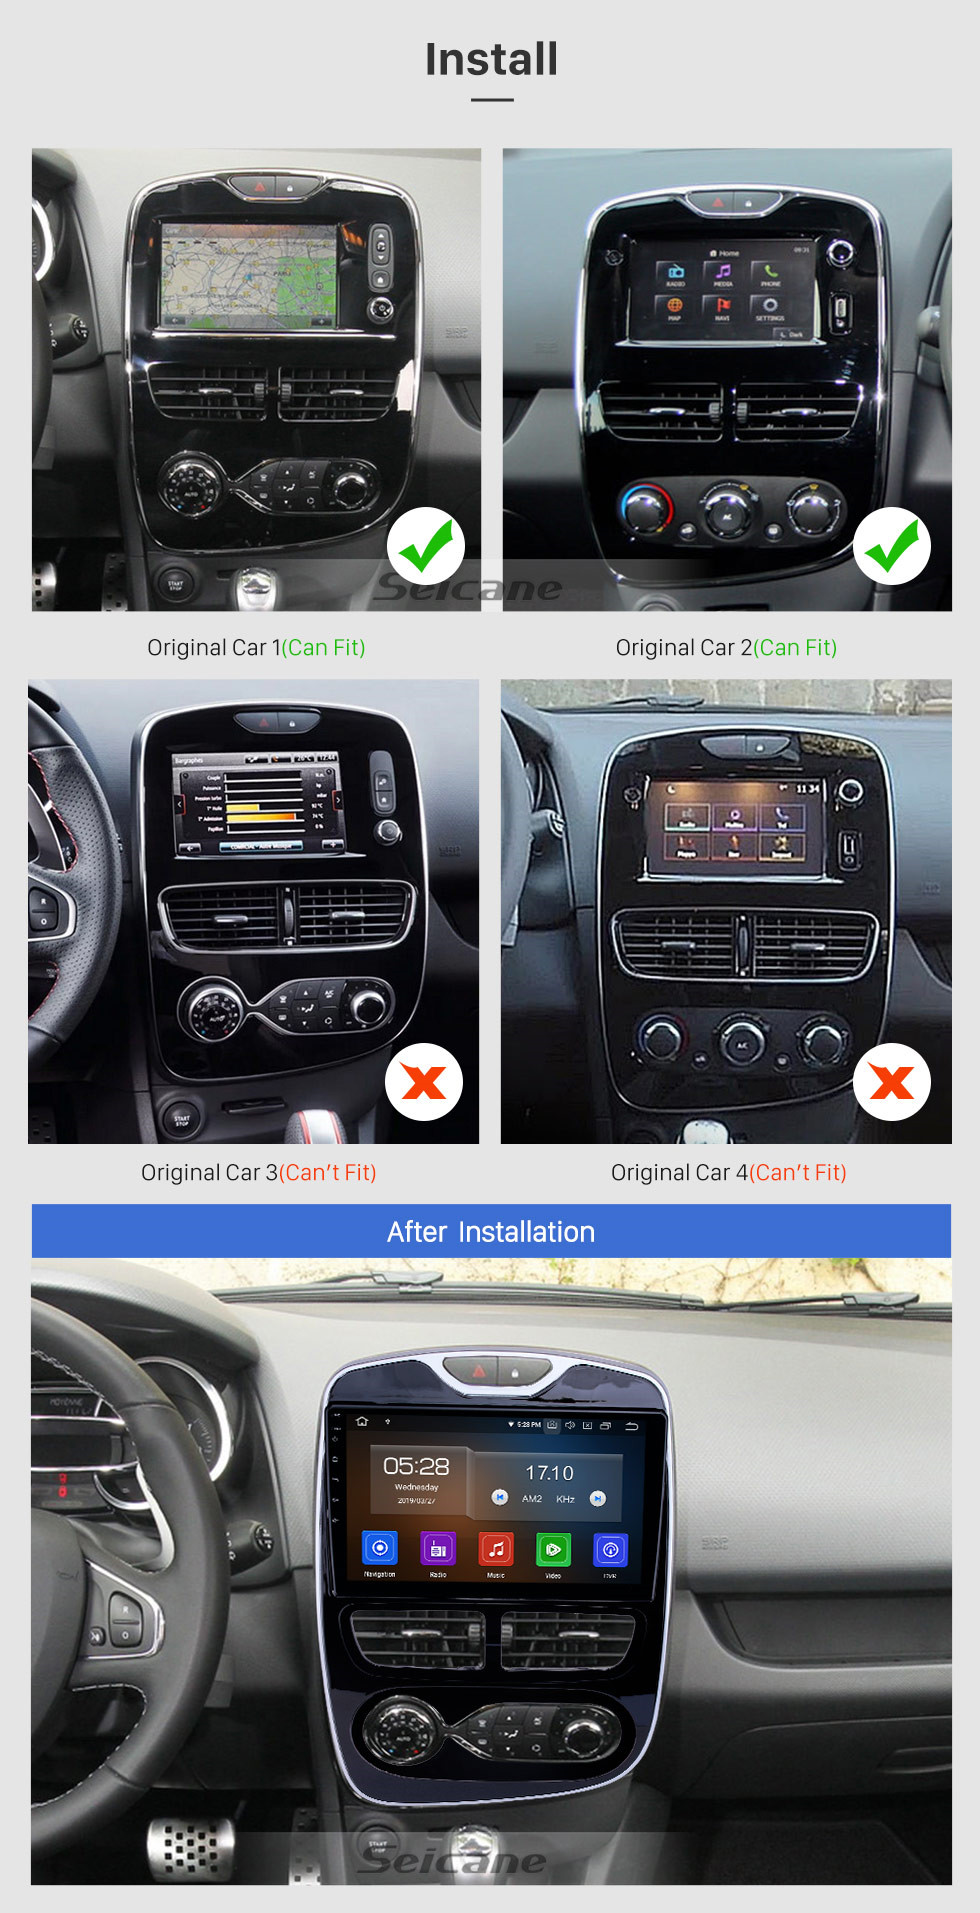 Seicane 10,1 Zoll Android 10.0 GPS Navigationsradio für 2012-2016 Renault Clio Digital / Analog Bluetooth HD Touchscreen Carplay Unterstützung DVR